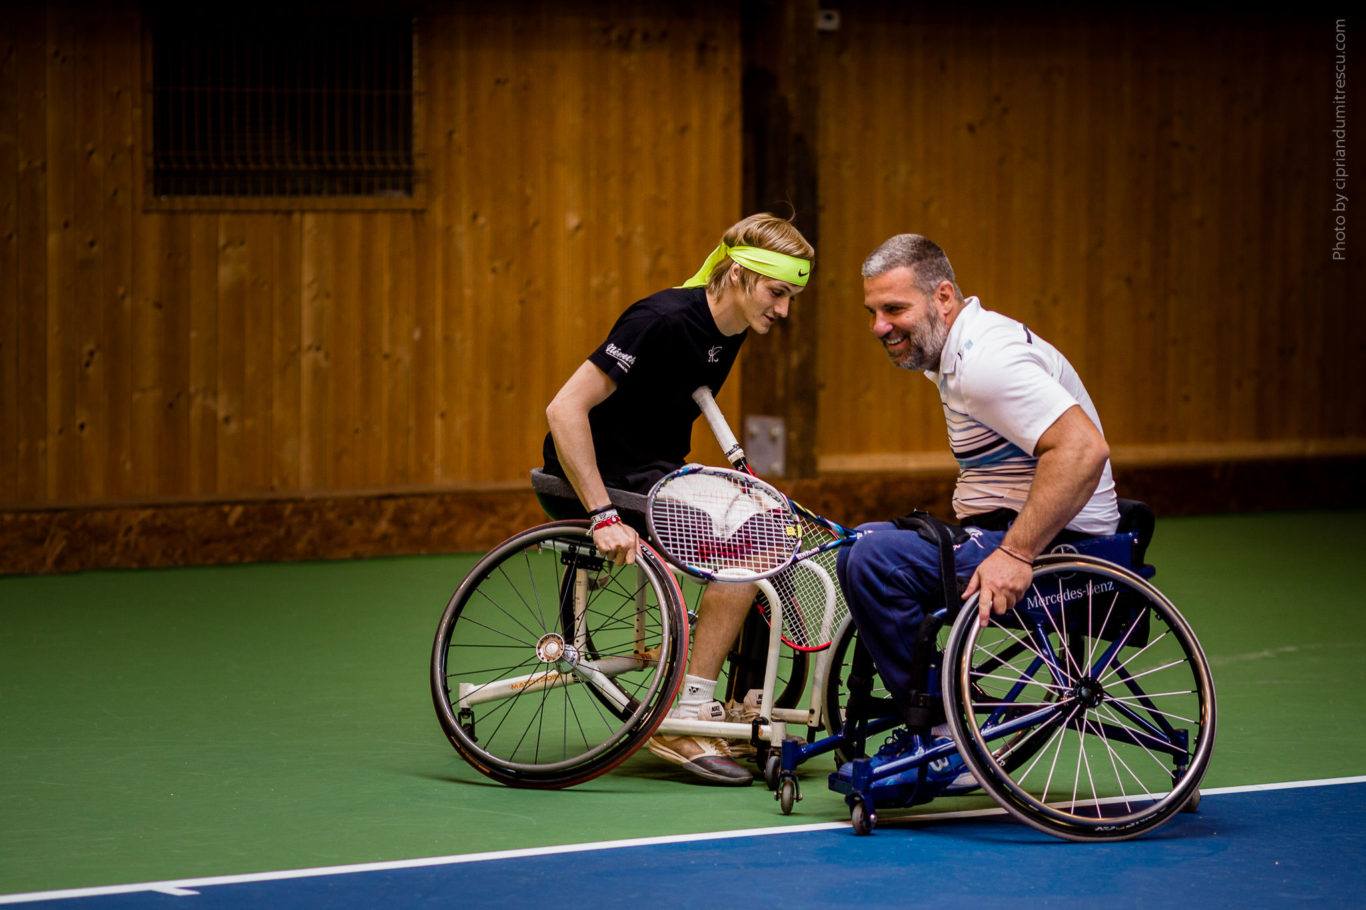 017-Bucharest-Open-Wheelchair-2016-Day-One-Photographer-Ciprian-Dumitrescu